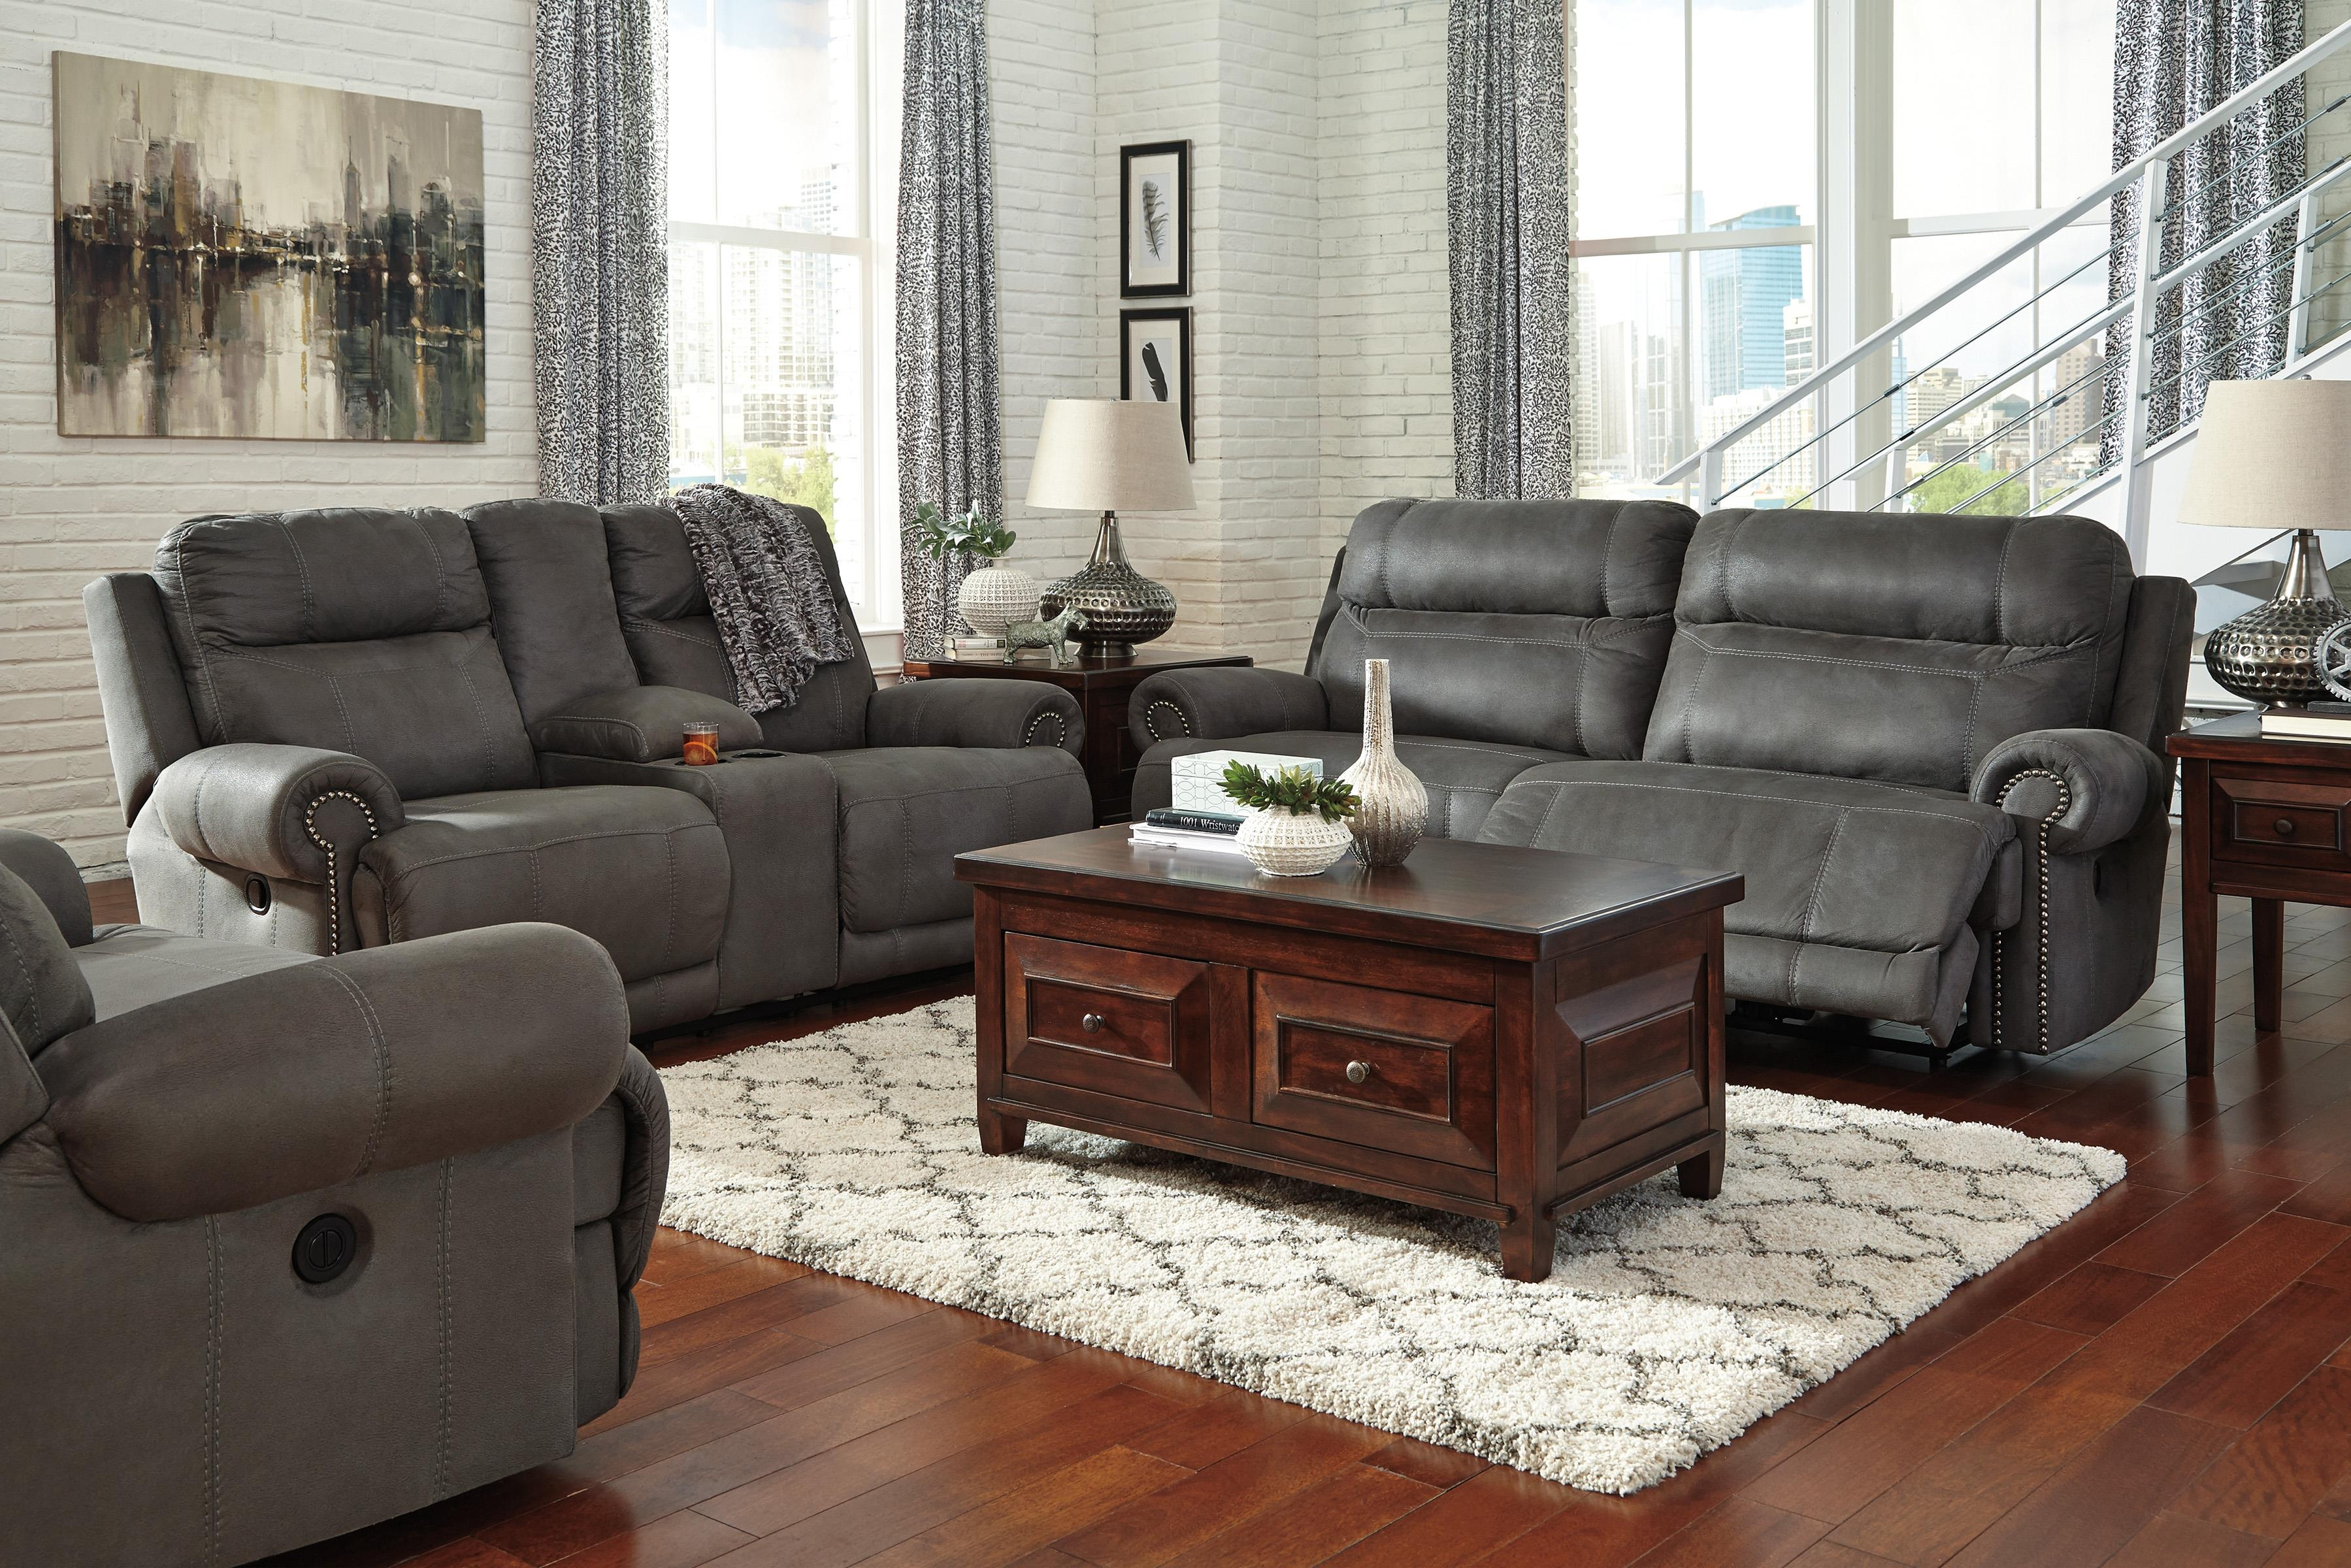 Signature Design Ashley Austere Gray 2 Seat Reclining Sofa With Ashley Furniture Gray Sofa (View 5 of 12)